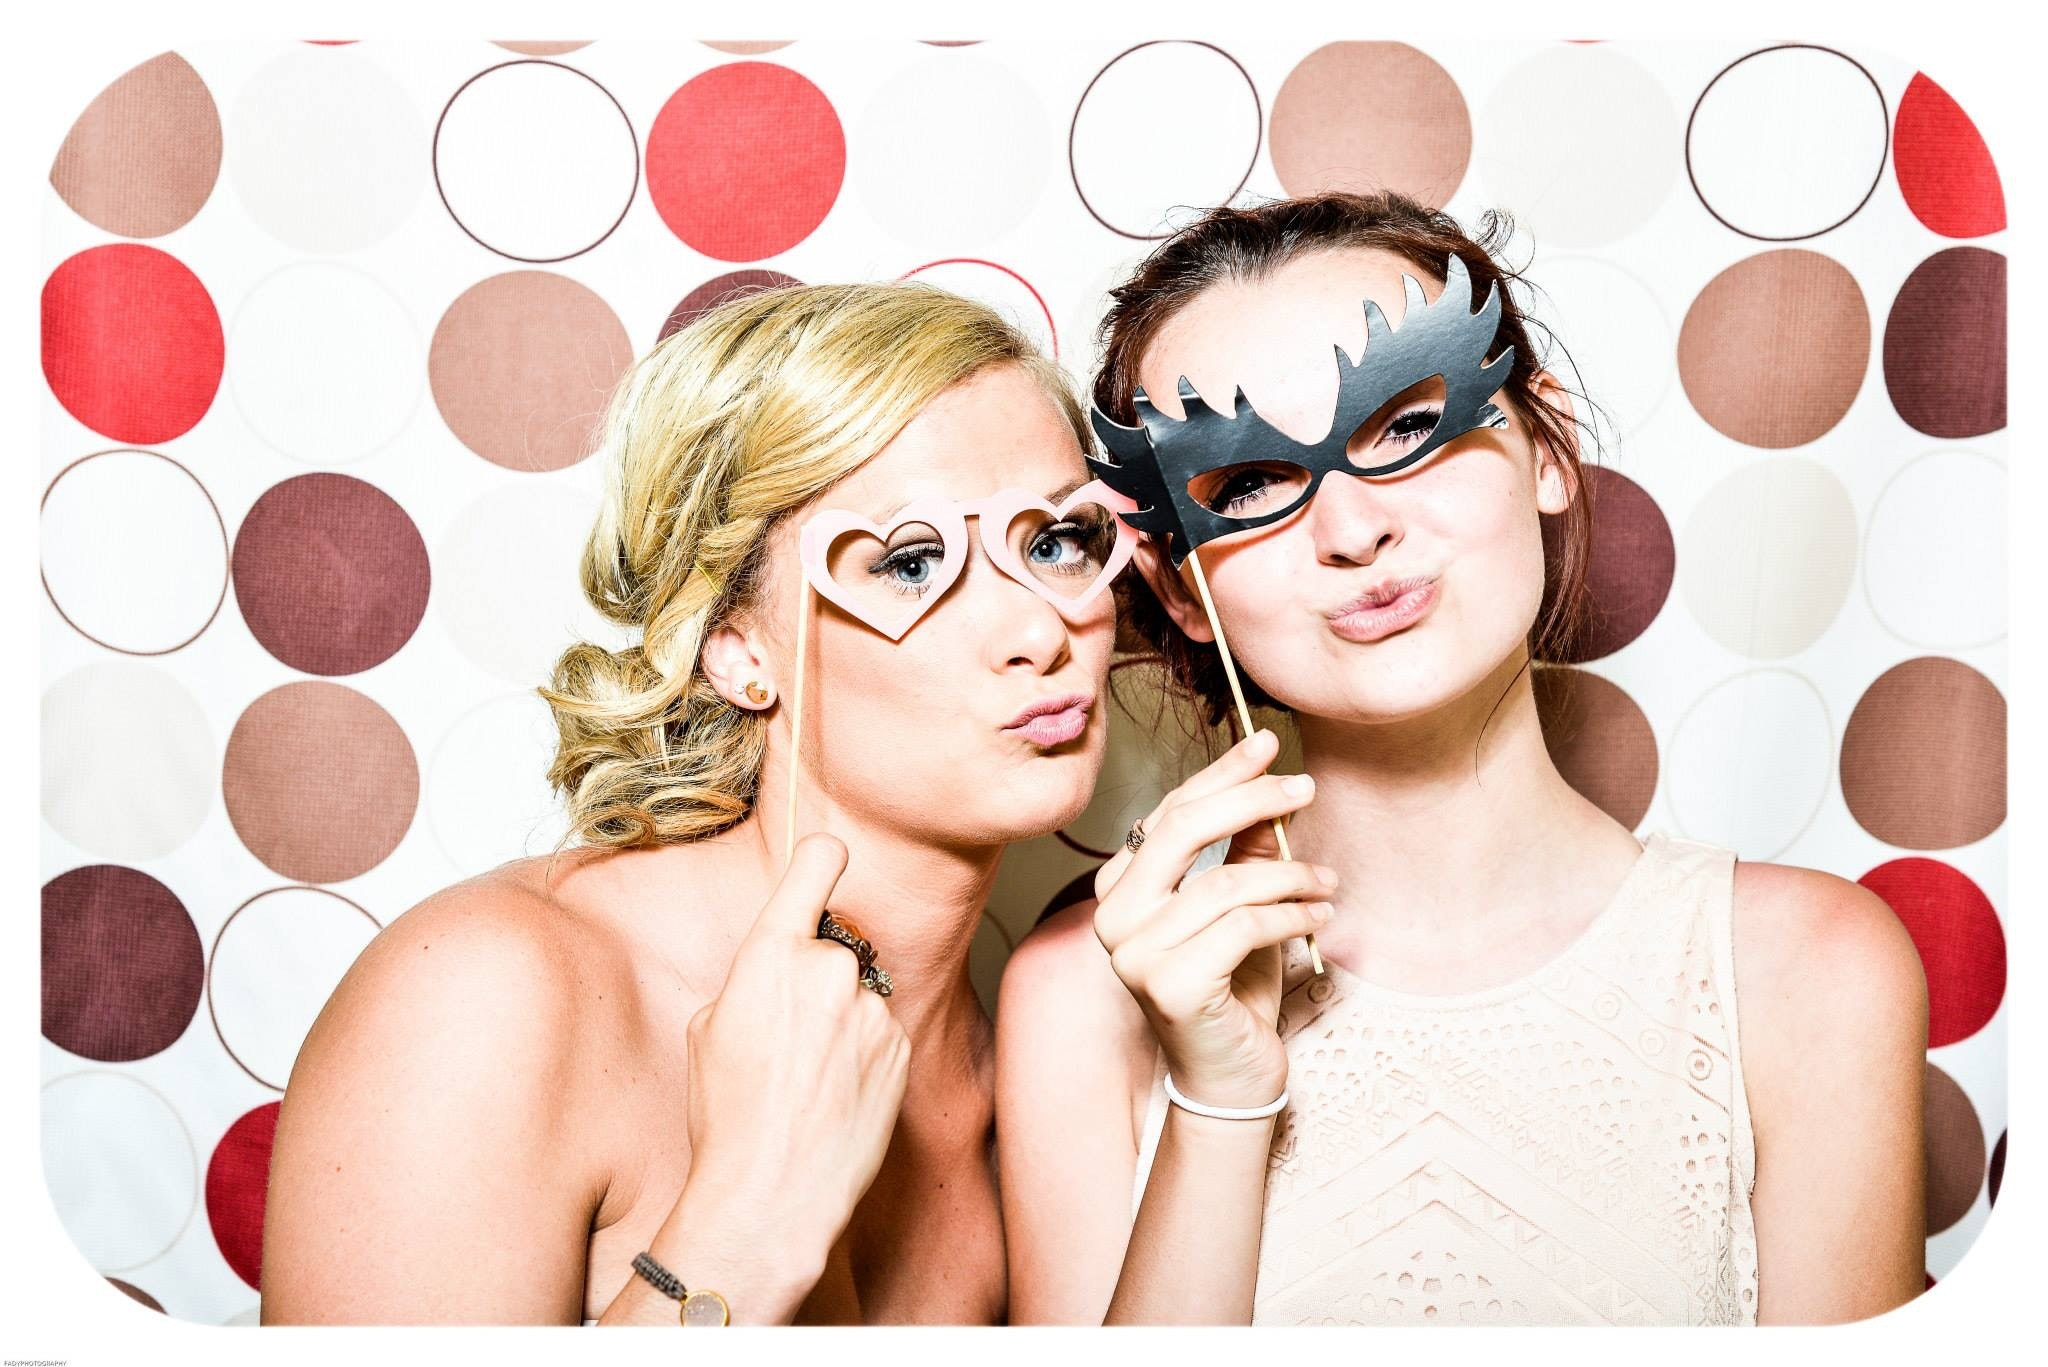 Two Woman Taking Photo in Photobooth Holding Black and Pink Masquerade Mask, Photobooth, People, Party, Proof, HQ Photo